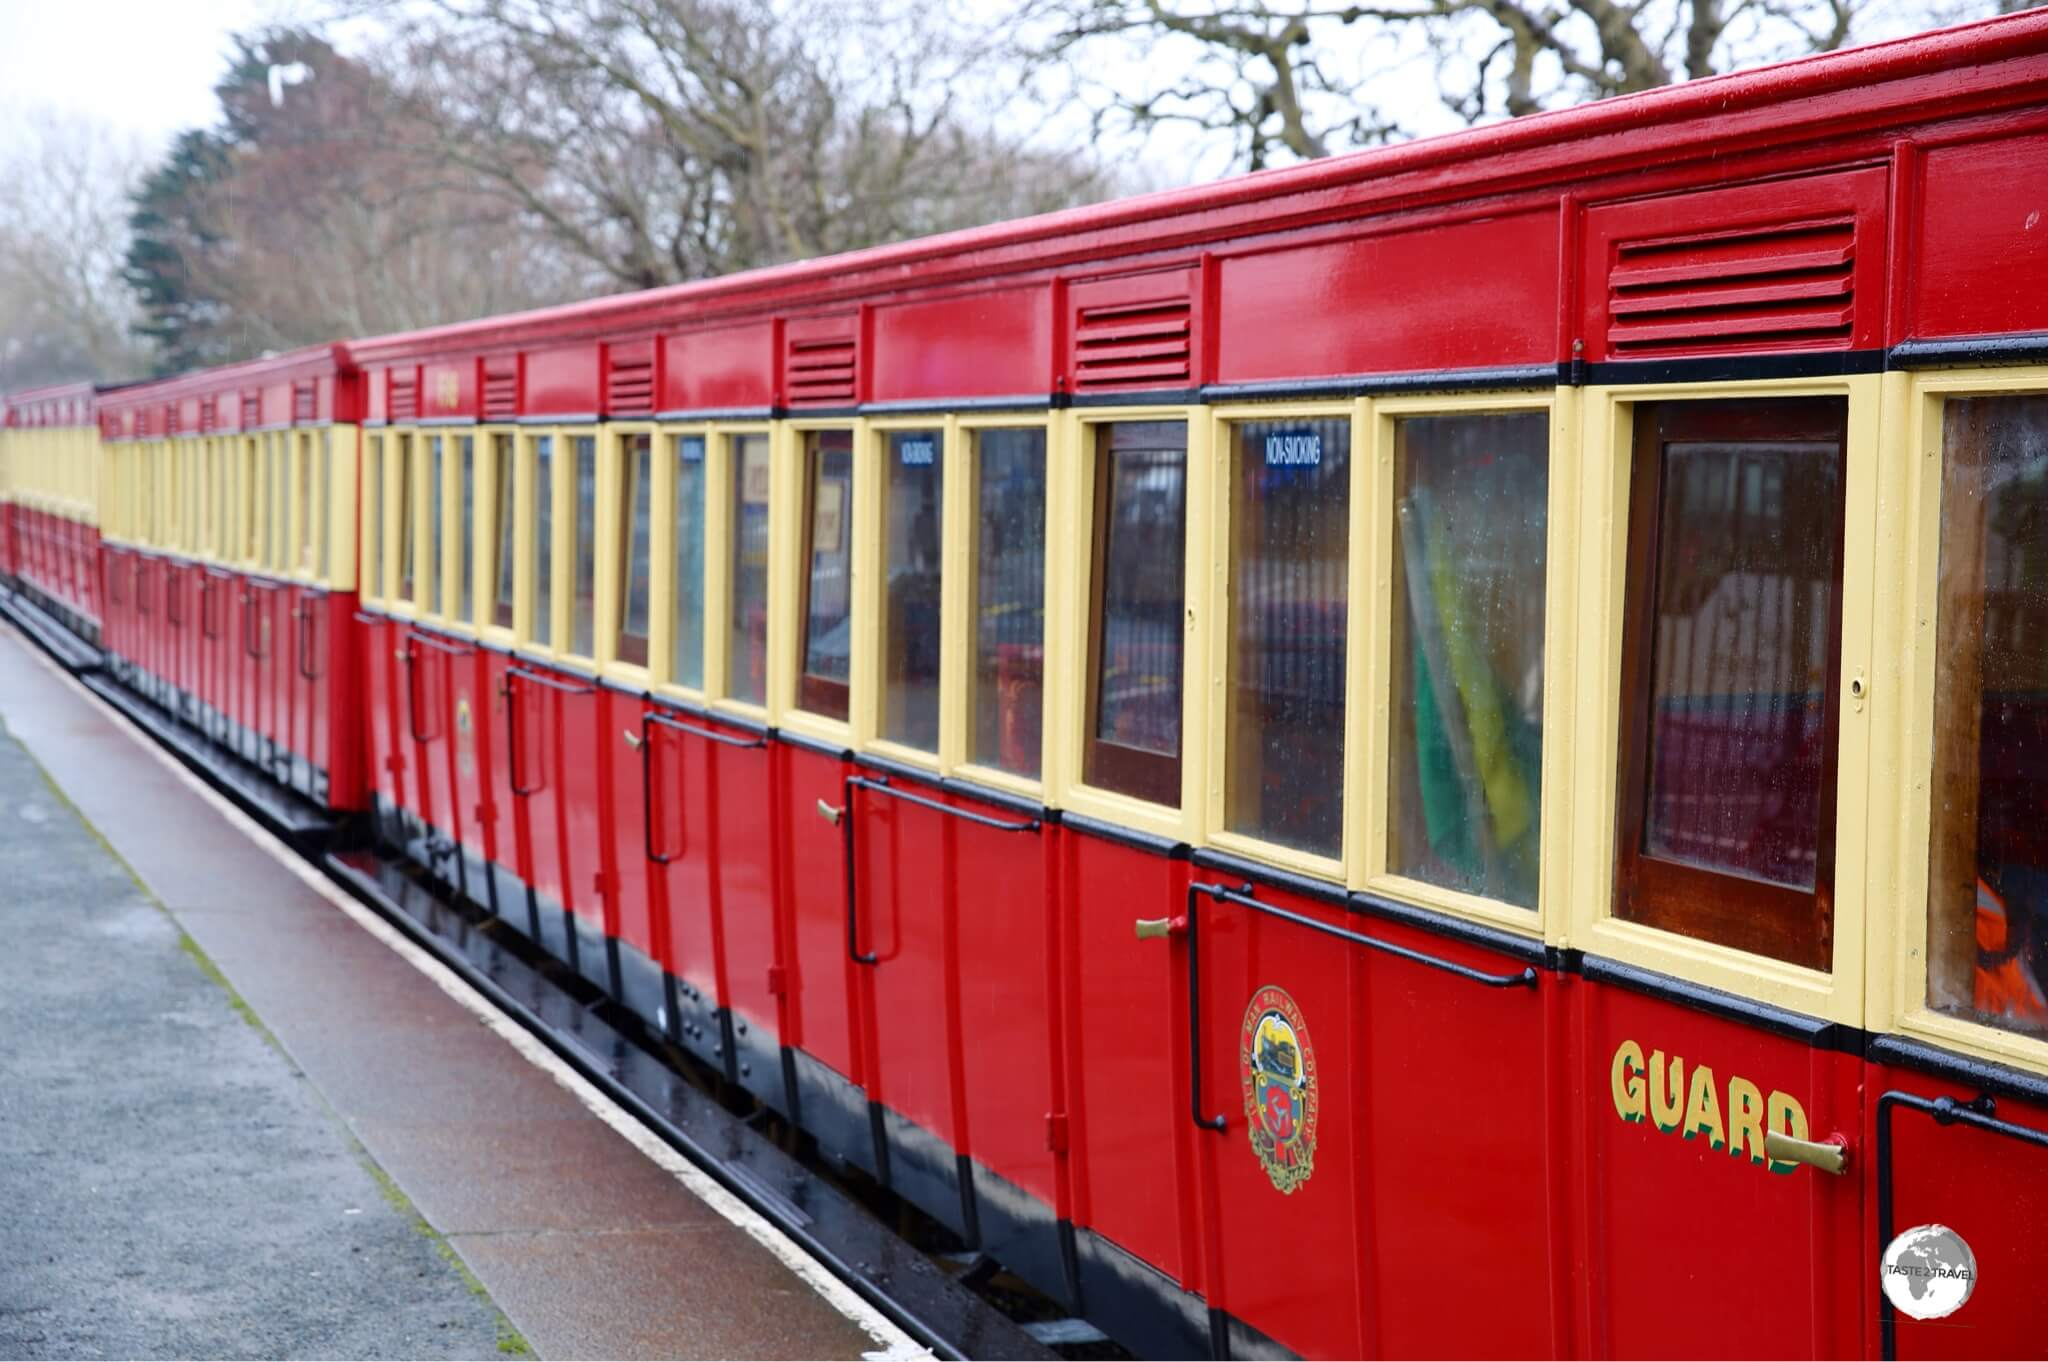 The distinctly red carriages of the Steam Railway Company.